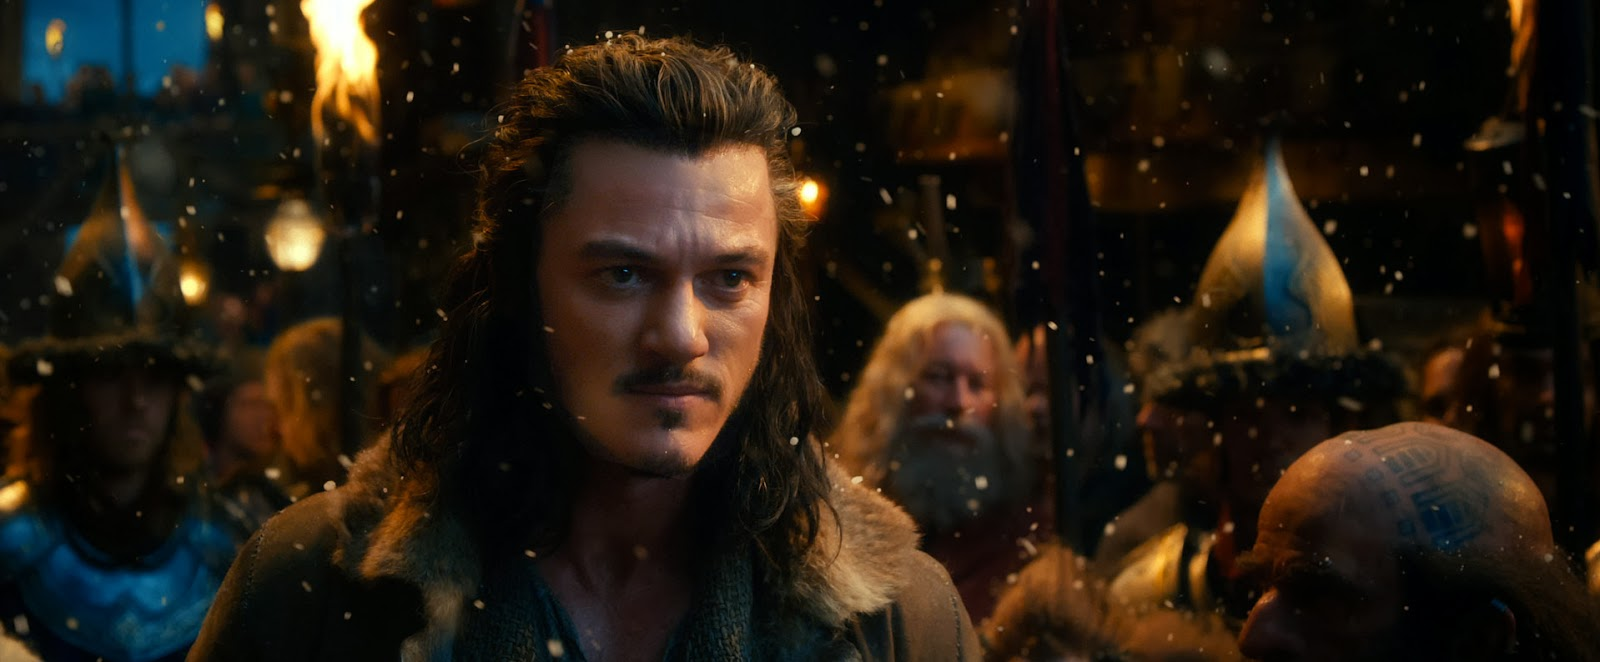 Luke Evans as Bard the Bowman in The Hobbit: The Desolation of Smaug